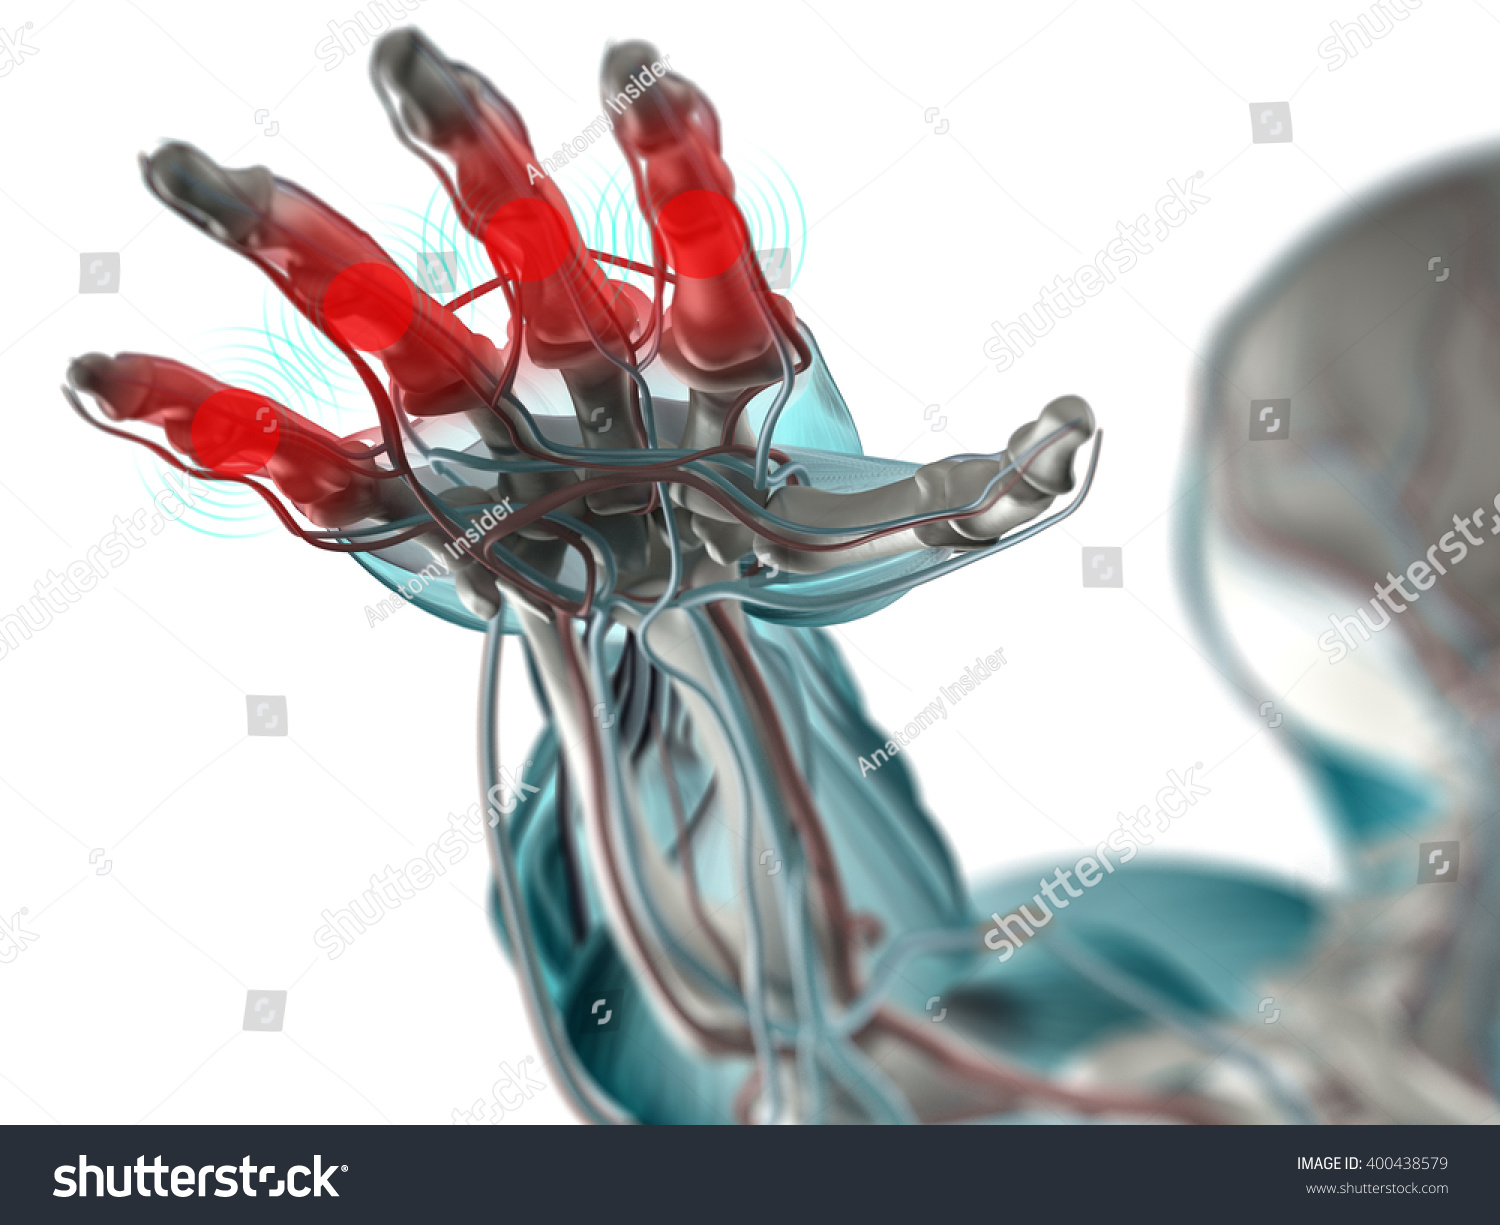 Arthritis Fingers Hand Anatomy 3 D Illustration Stock Illustration ...